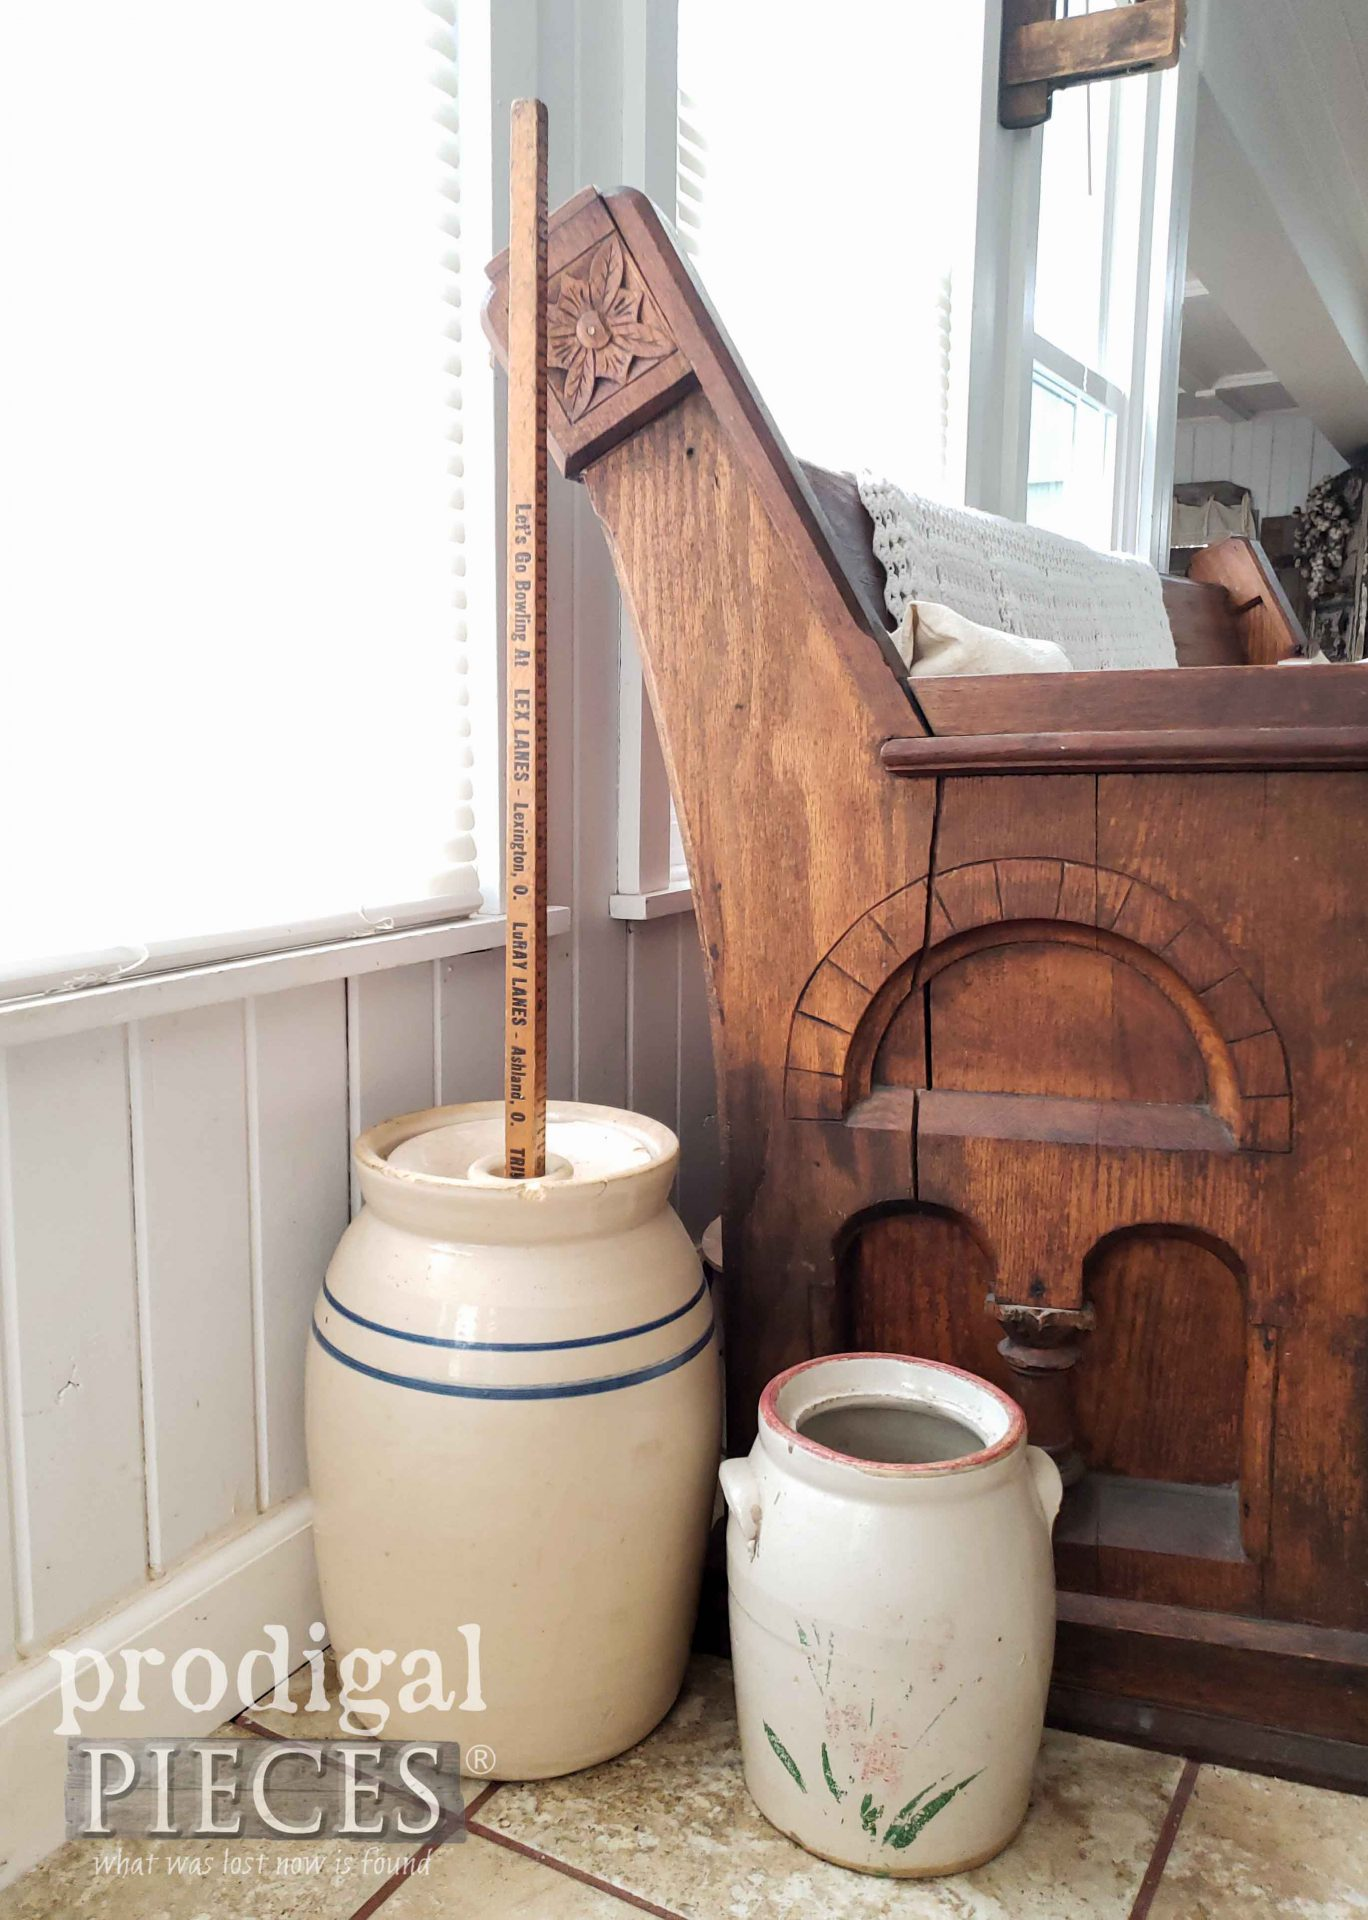 Antique Butter Churn with Walking Stick by Prodigal Pieces | prodigalpieces.com #prodigalpieces #farmhouse #antique #home #homedecor